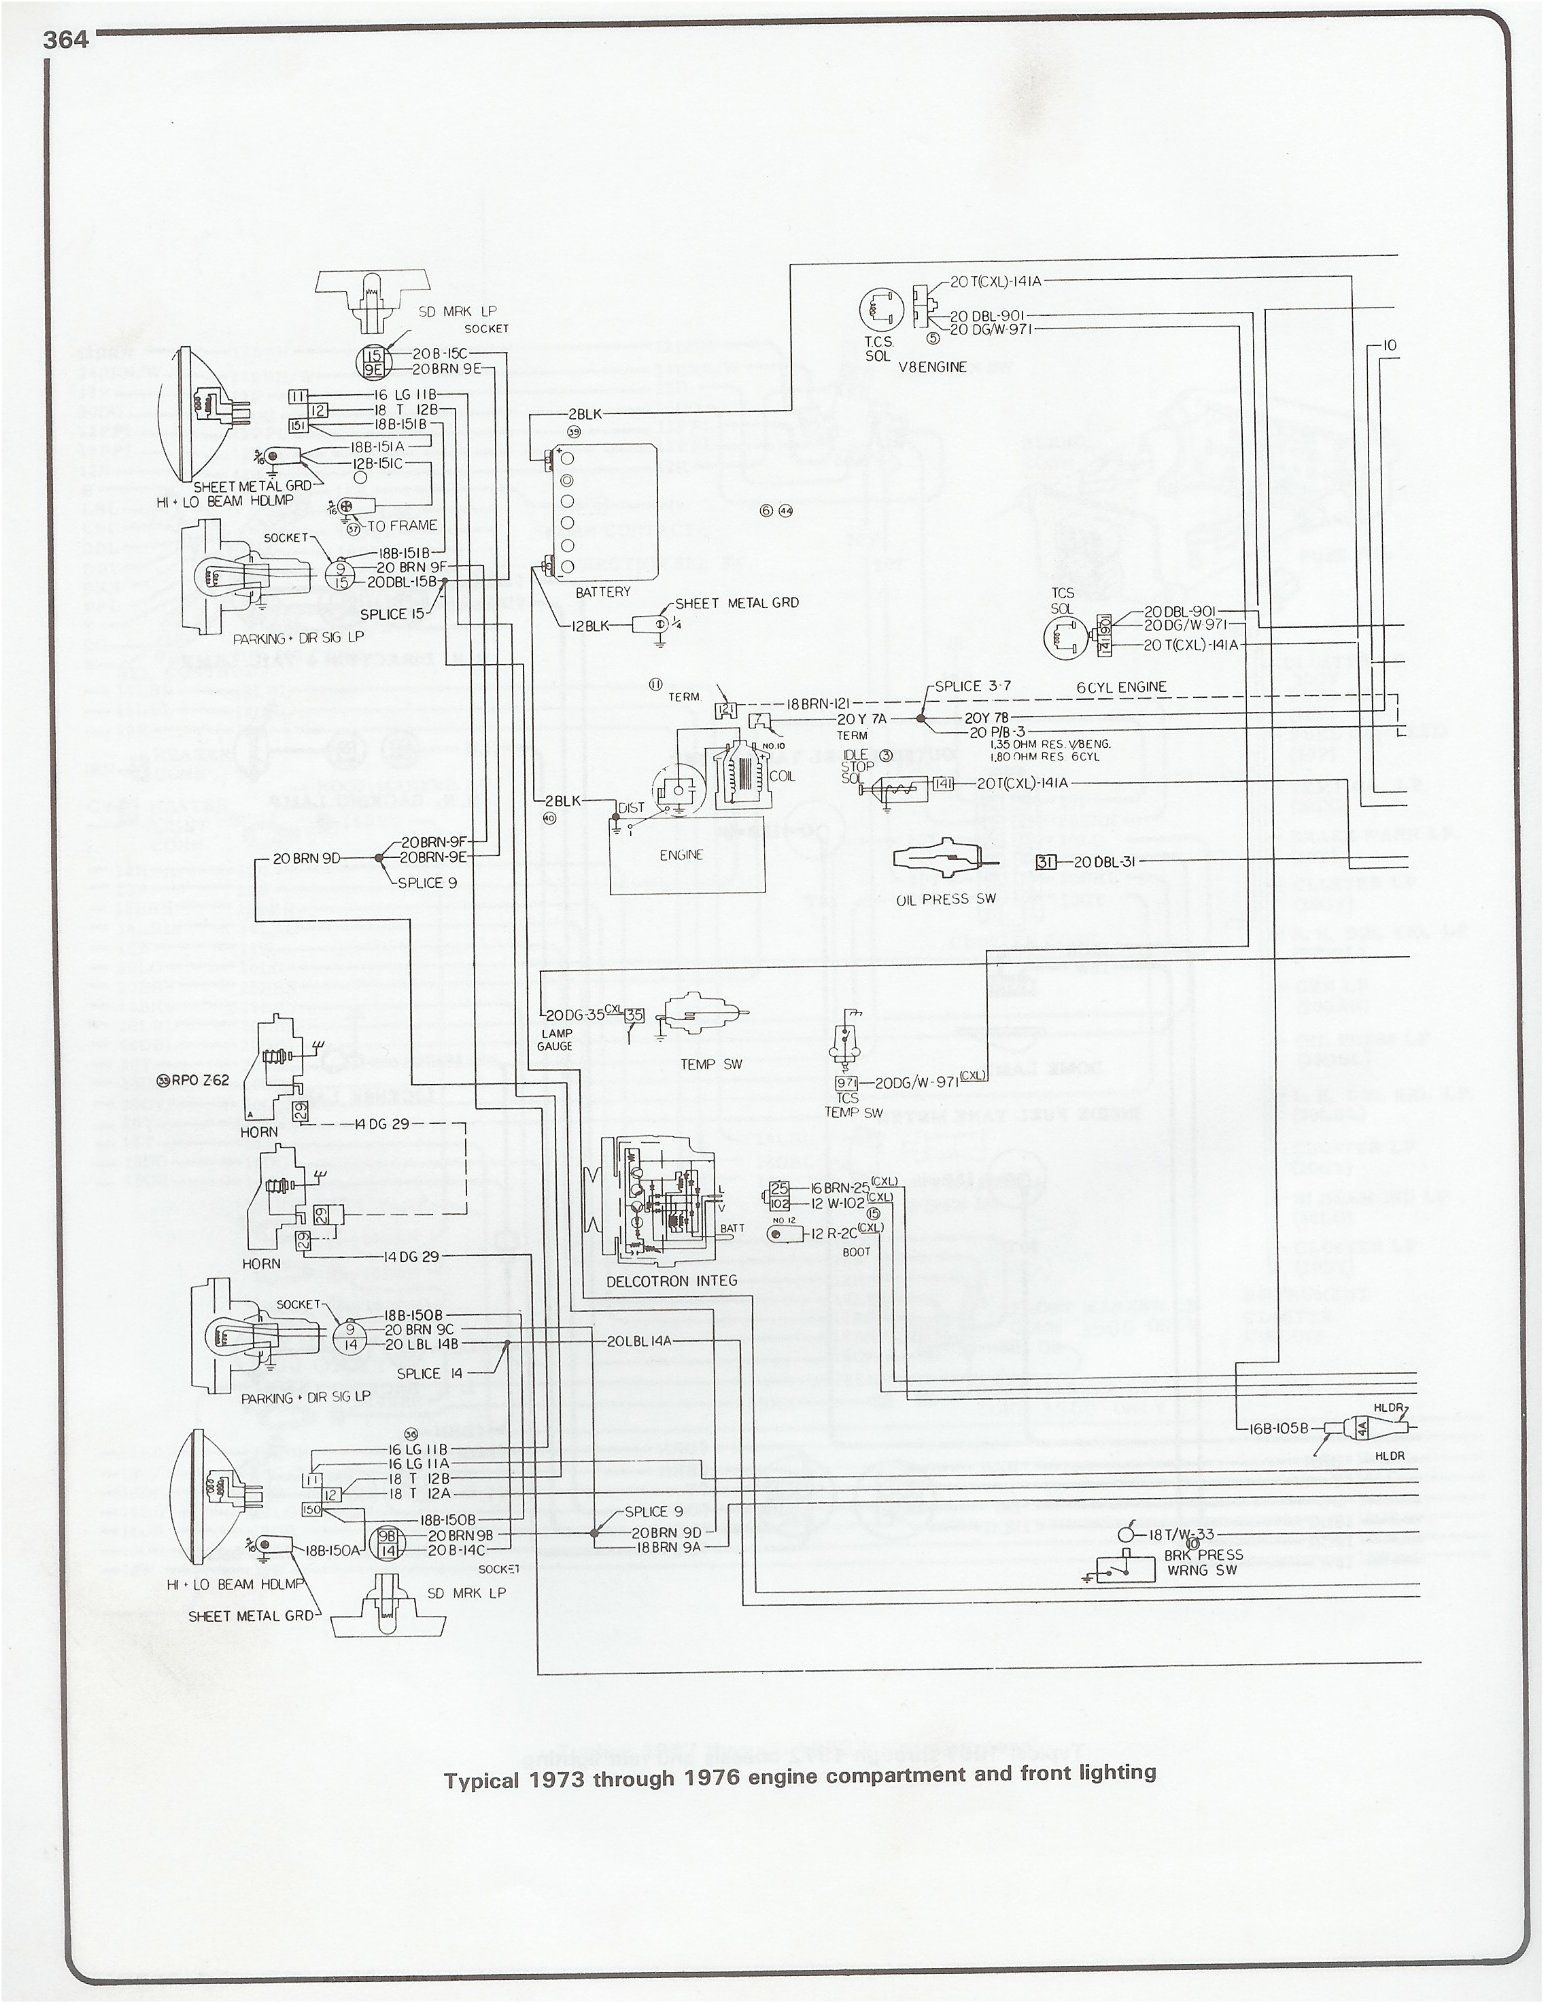 [SCHEMATICS_4US]  Wiring Diagram 1973 - 1976 Chevy Pickup #Chevy #Wiring #Diagram | 1973  chevy truck, 1976 chevy truck, Chevy pickups | 2106 Ford Headlight Wiring Diagram |  | Pinterest